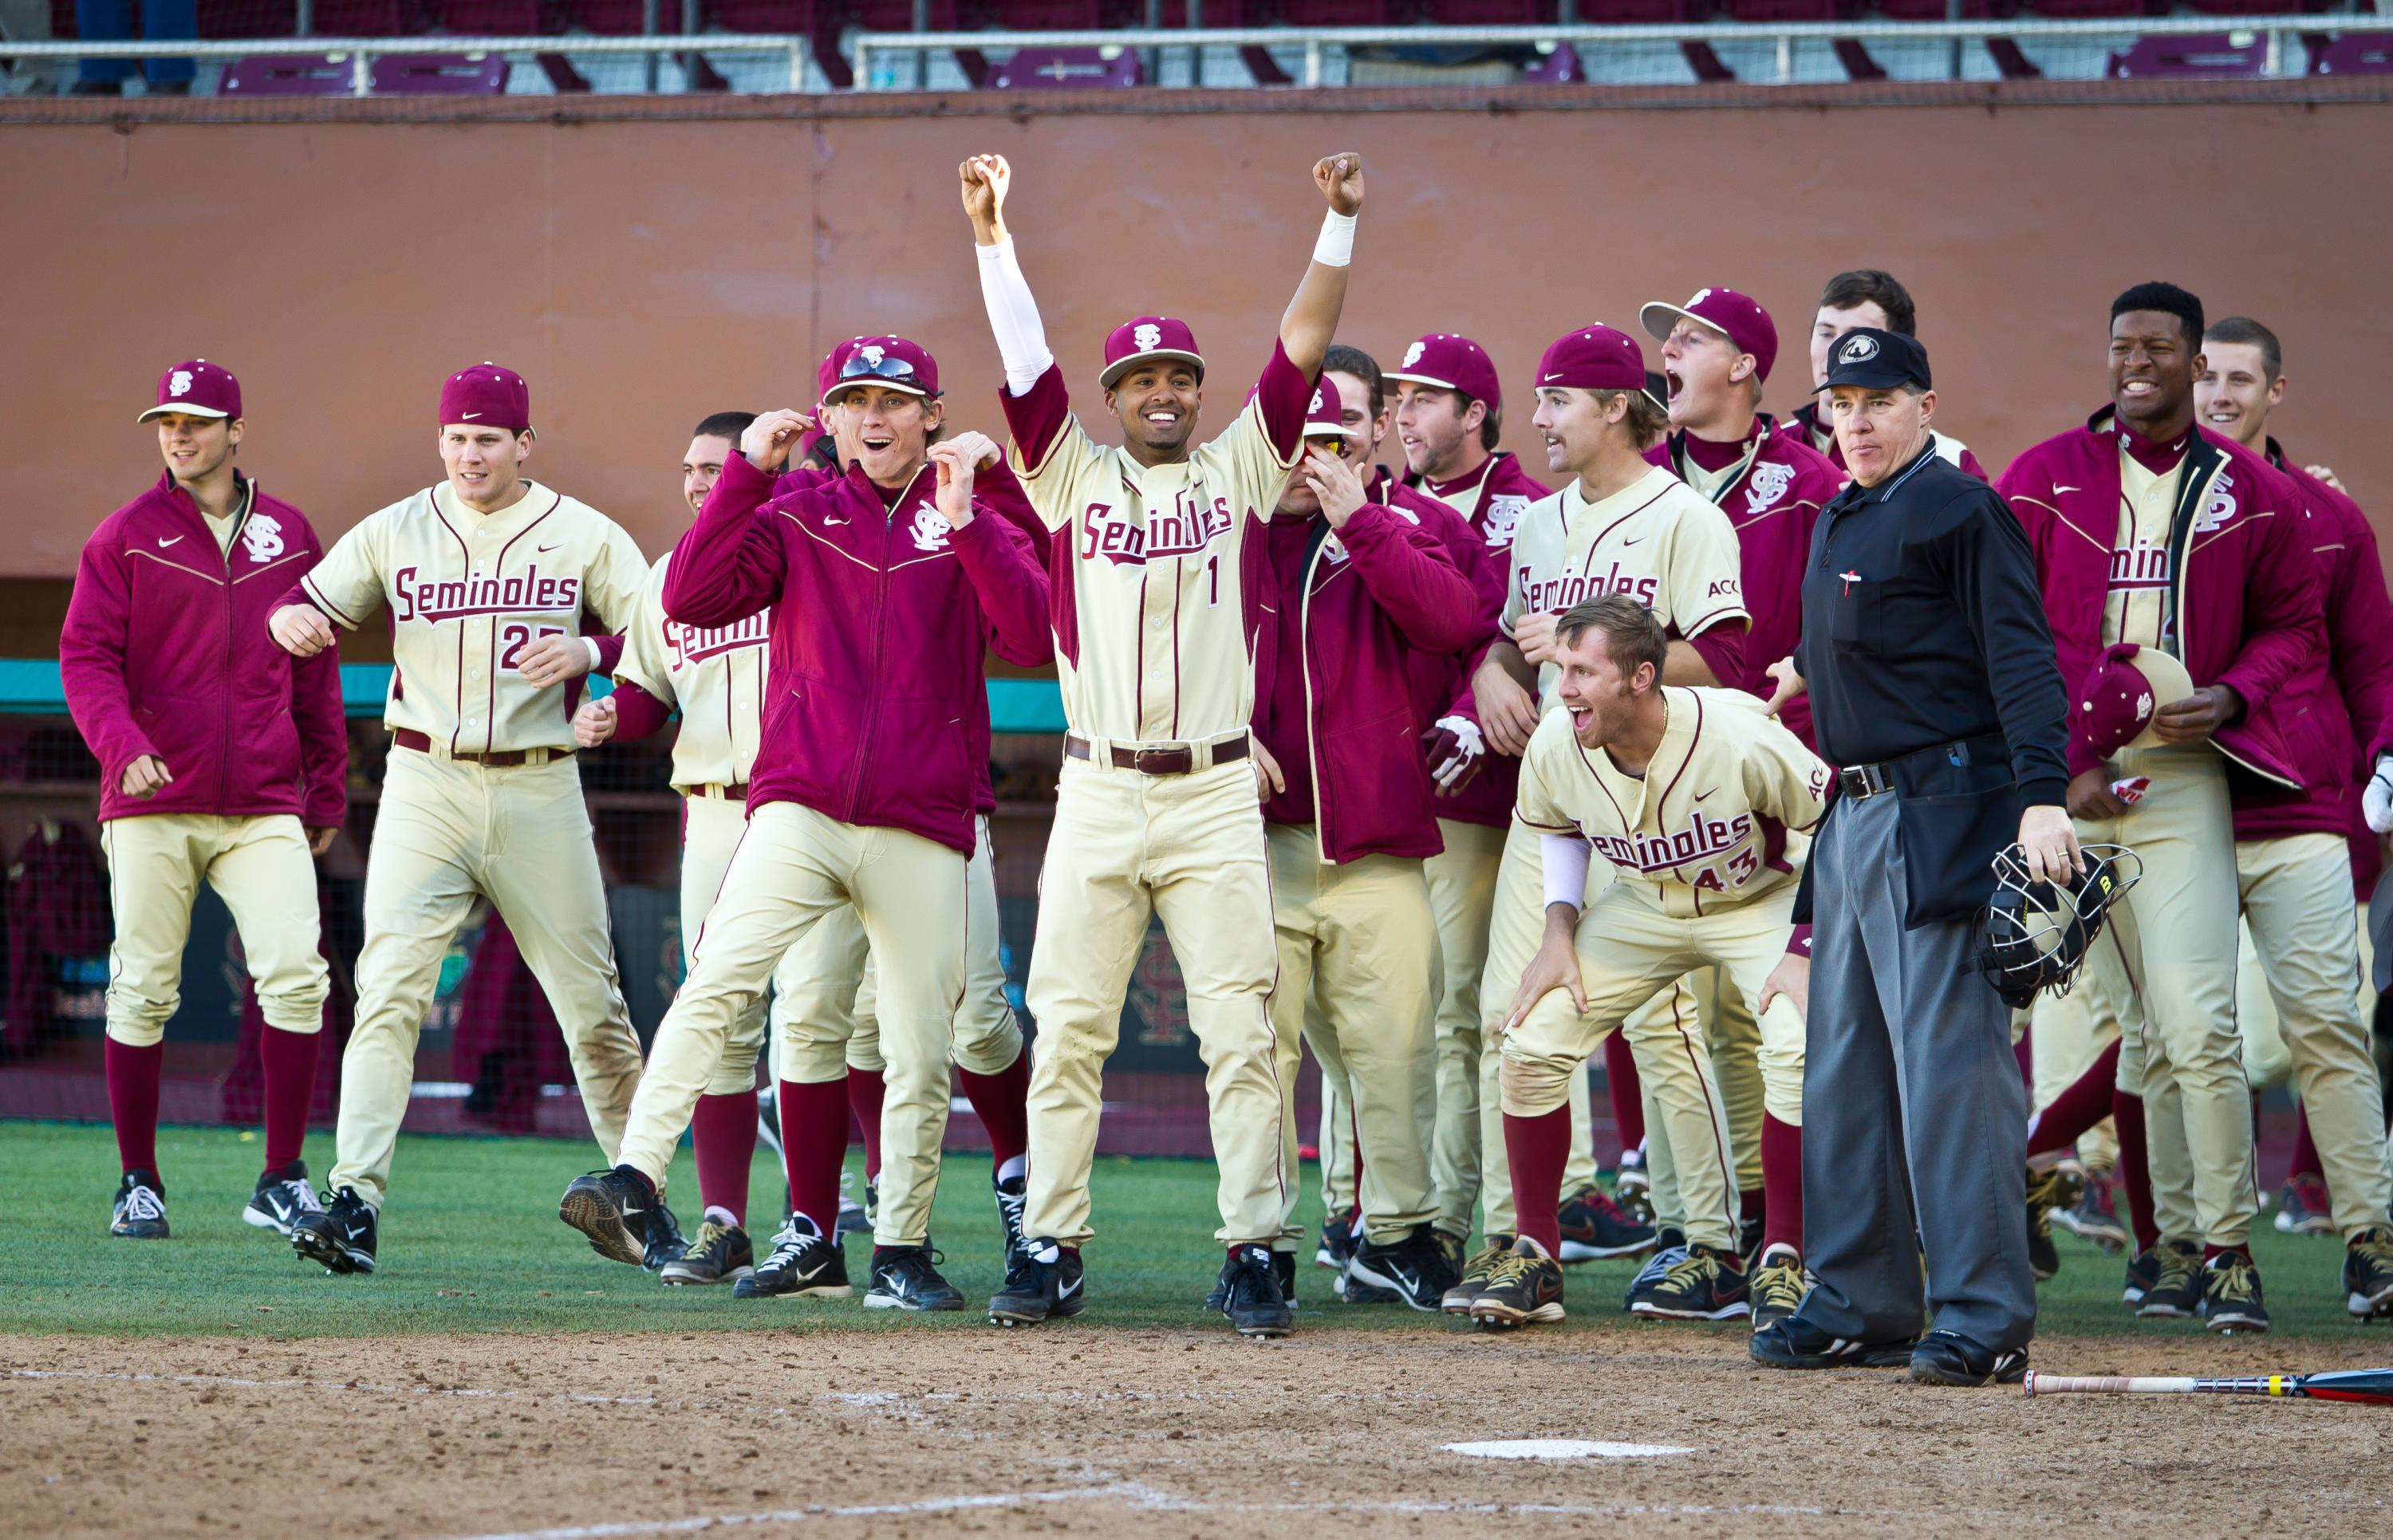 The Seminoles celebrate at home plate following Stewart's walk-off home run in the 10th inning.